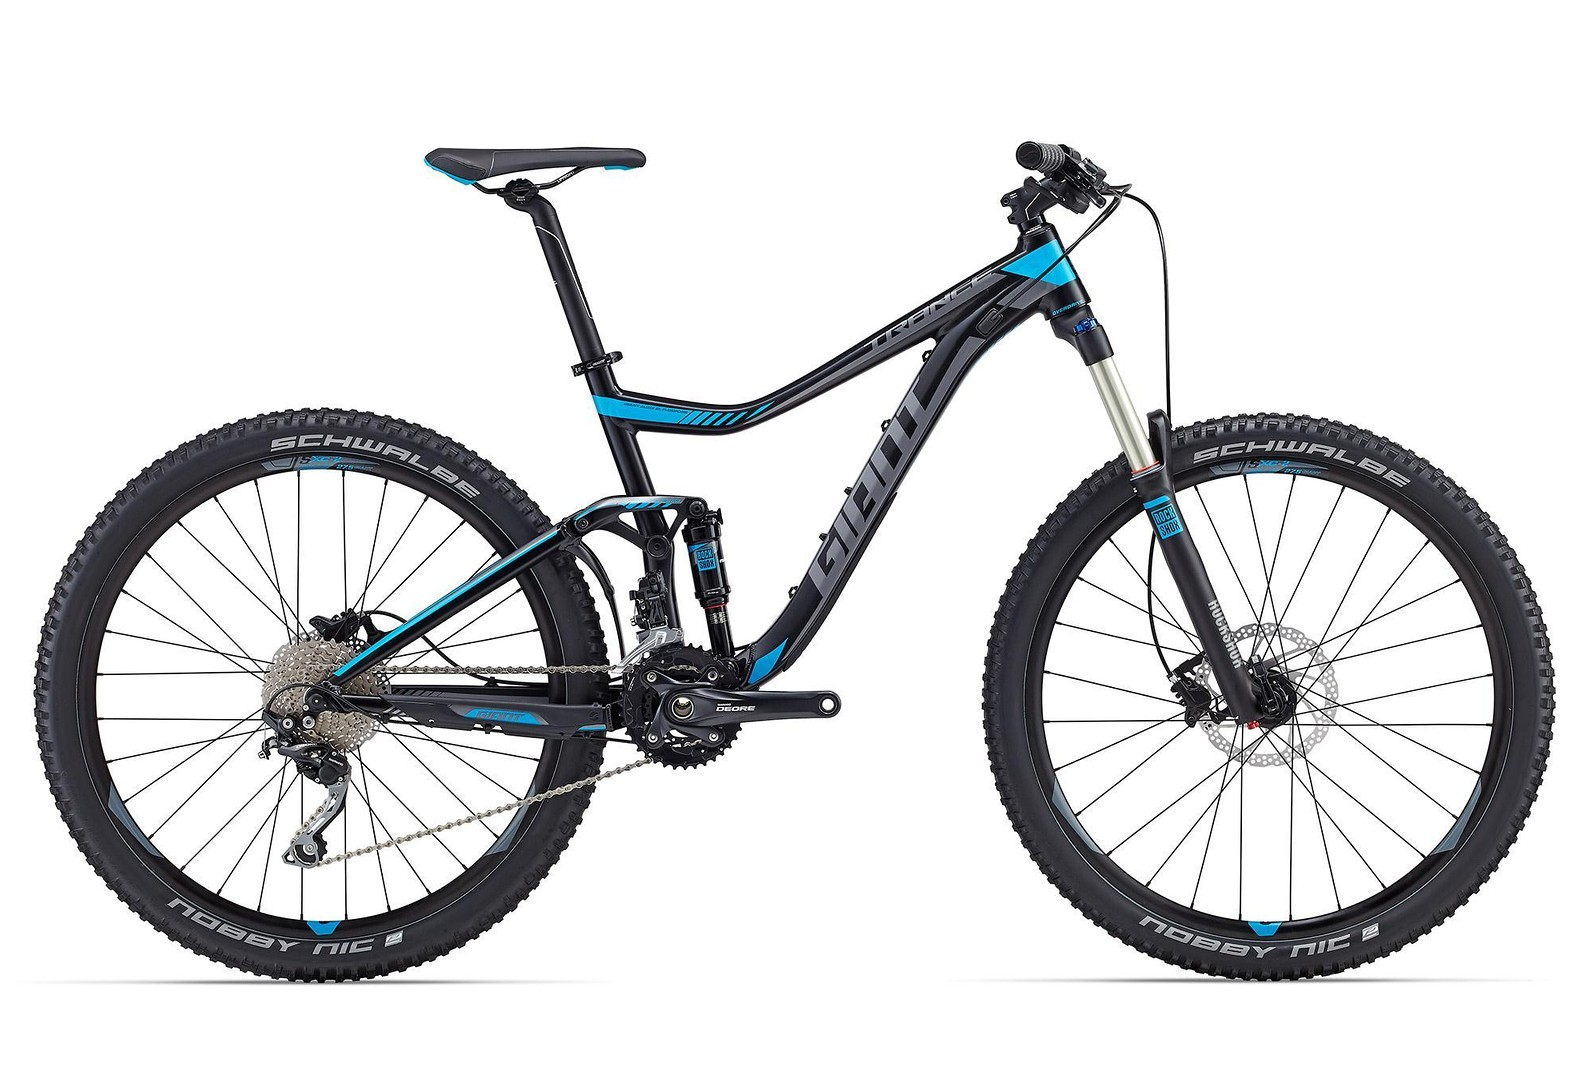 2016 Giant Trance 27 5 3 Bike Reviews Comparisons